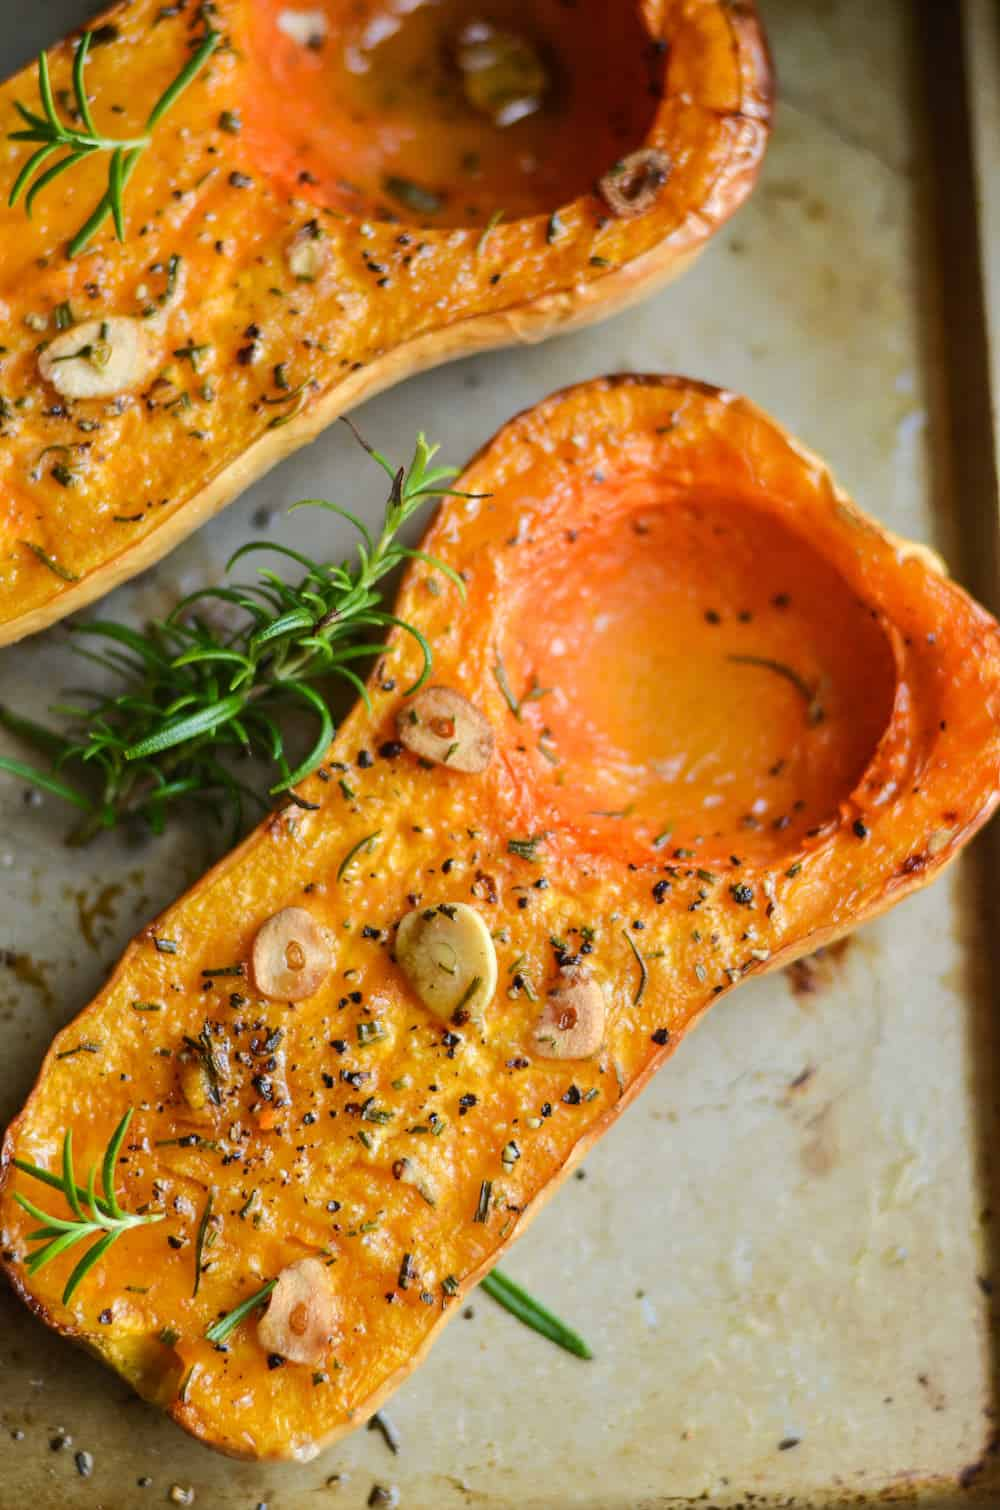 Rosemary Roasted Butternut Squash Recipe - diycandy.com